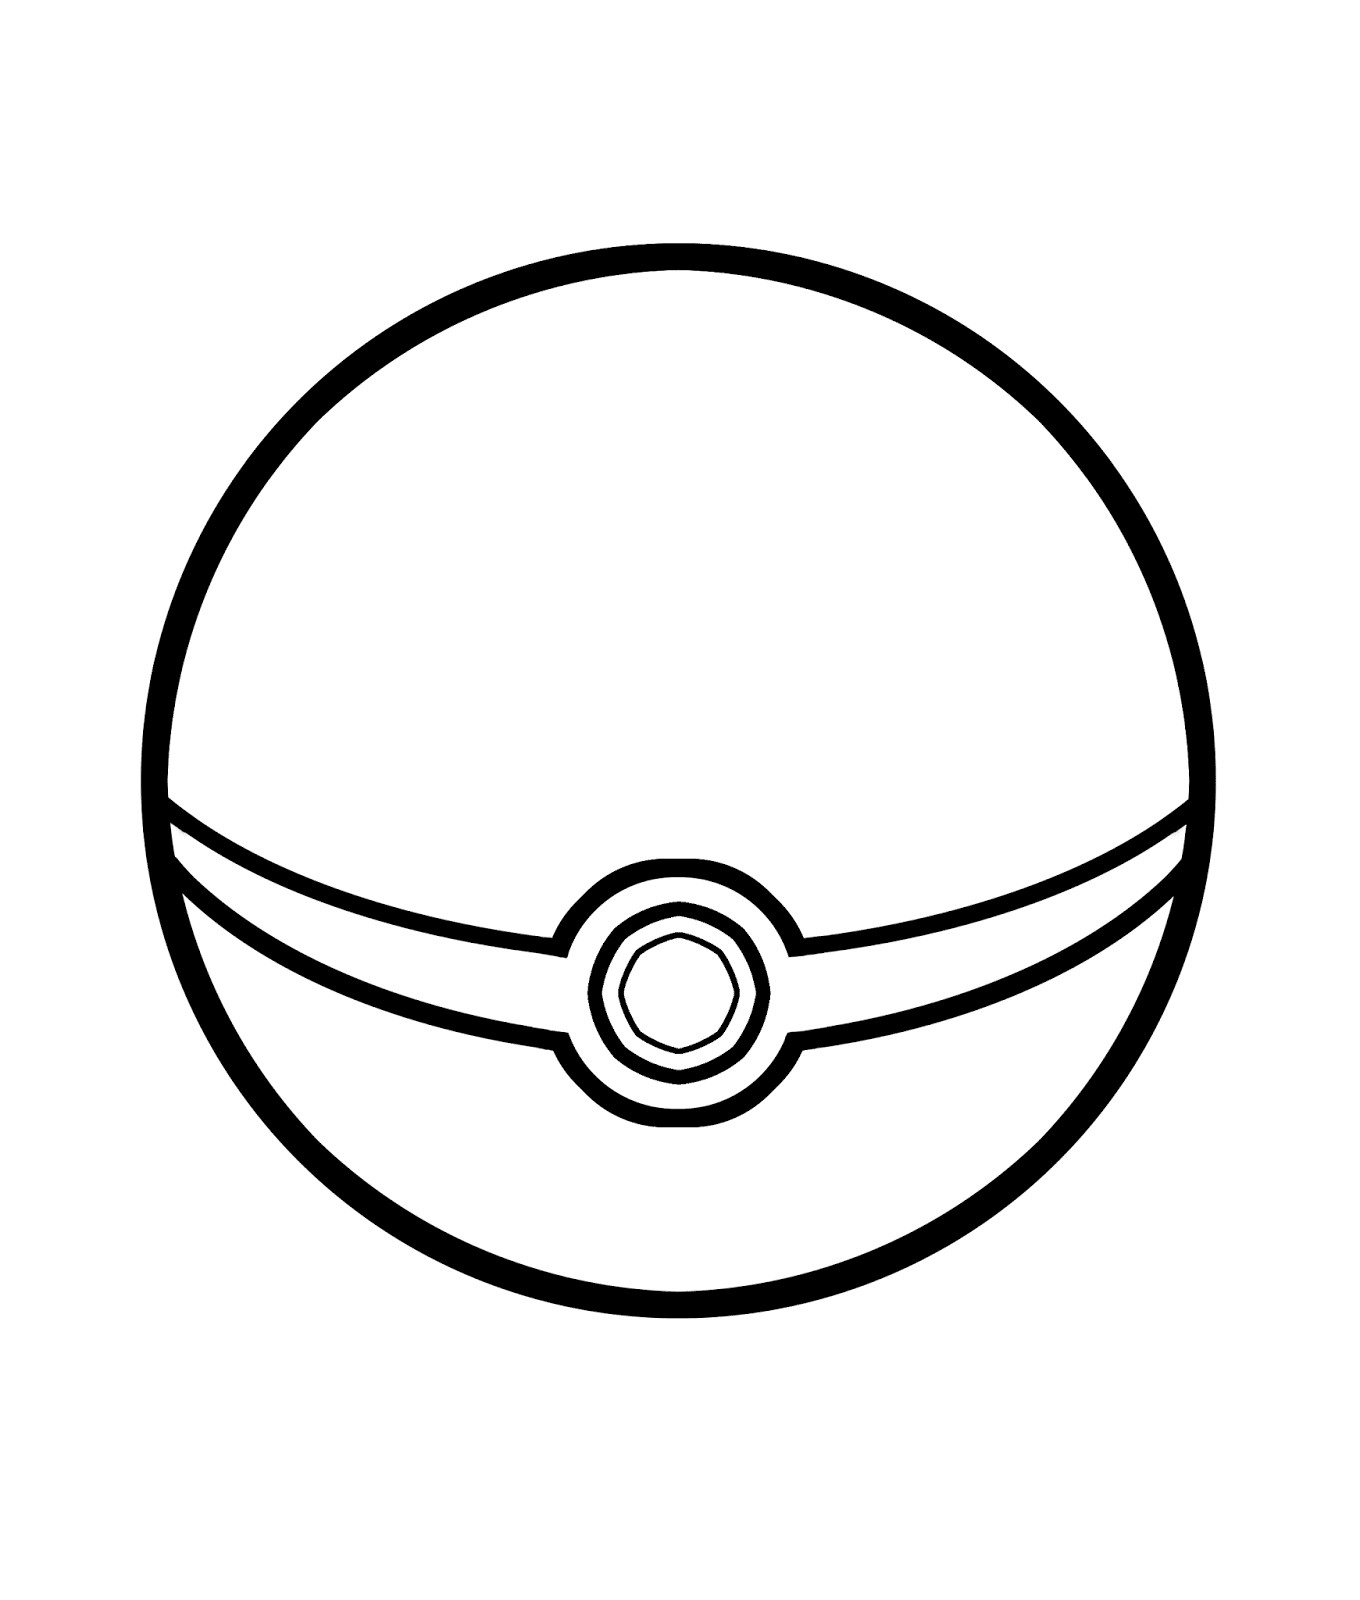 Coloriage De Pokémon à Imprimer New Dessins Et Coloriages Page De Coloriage Grand format